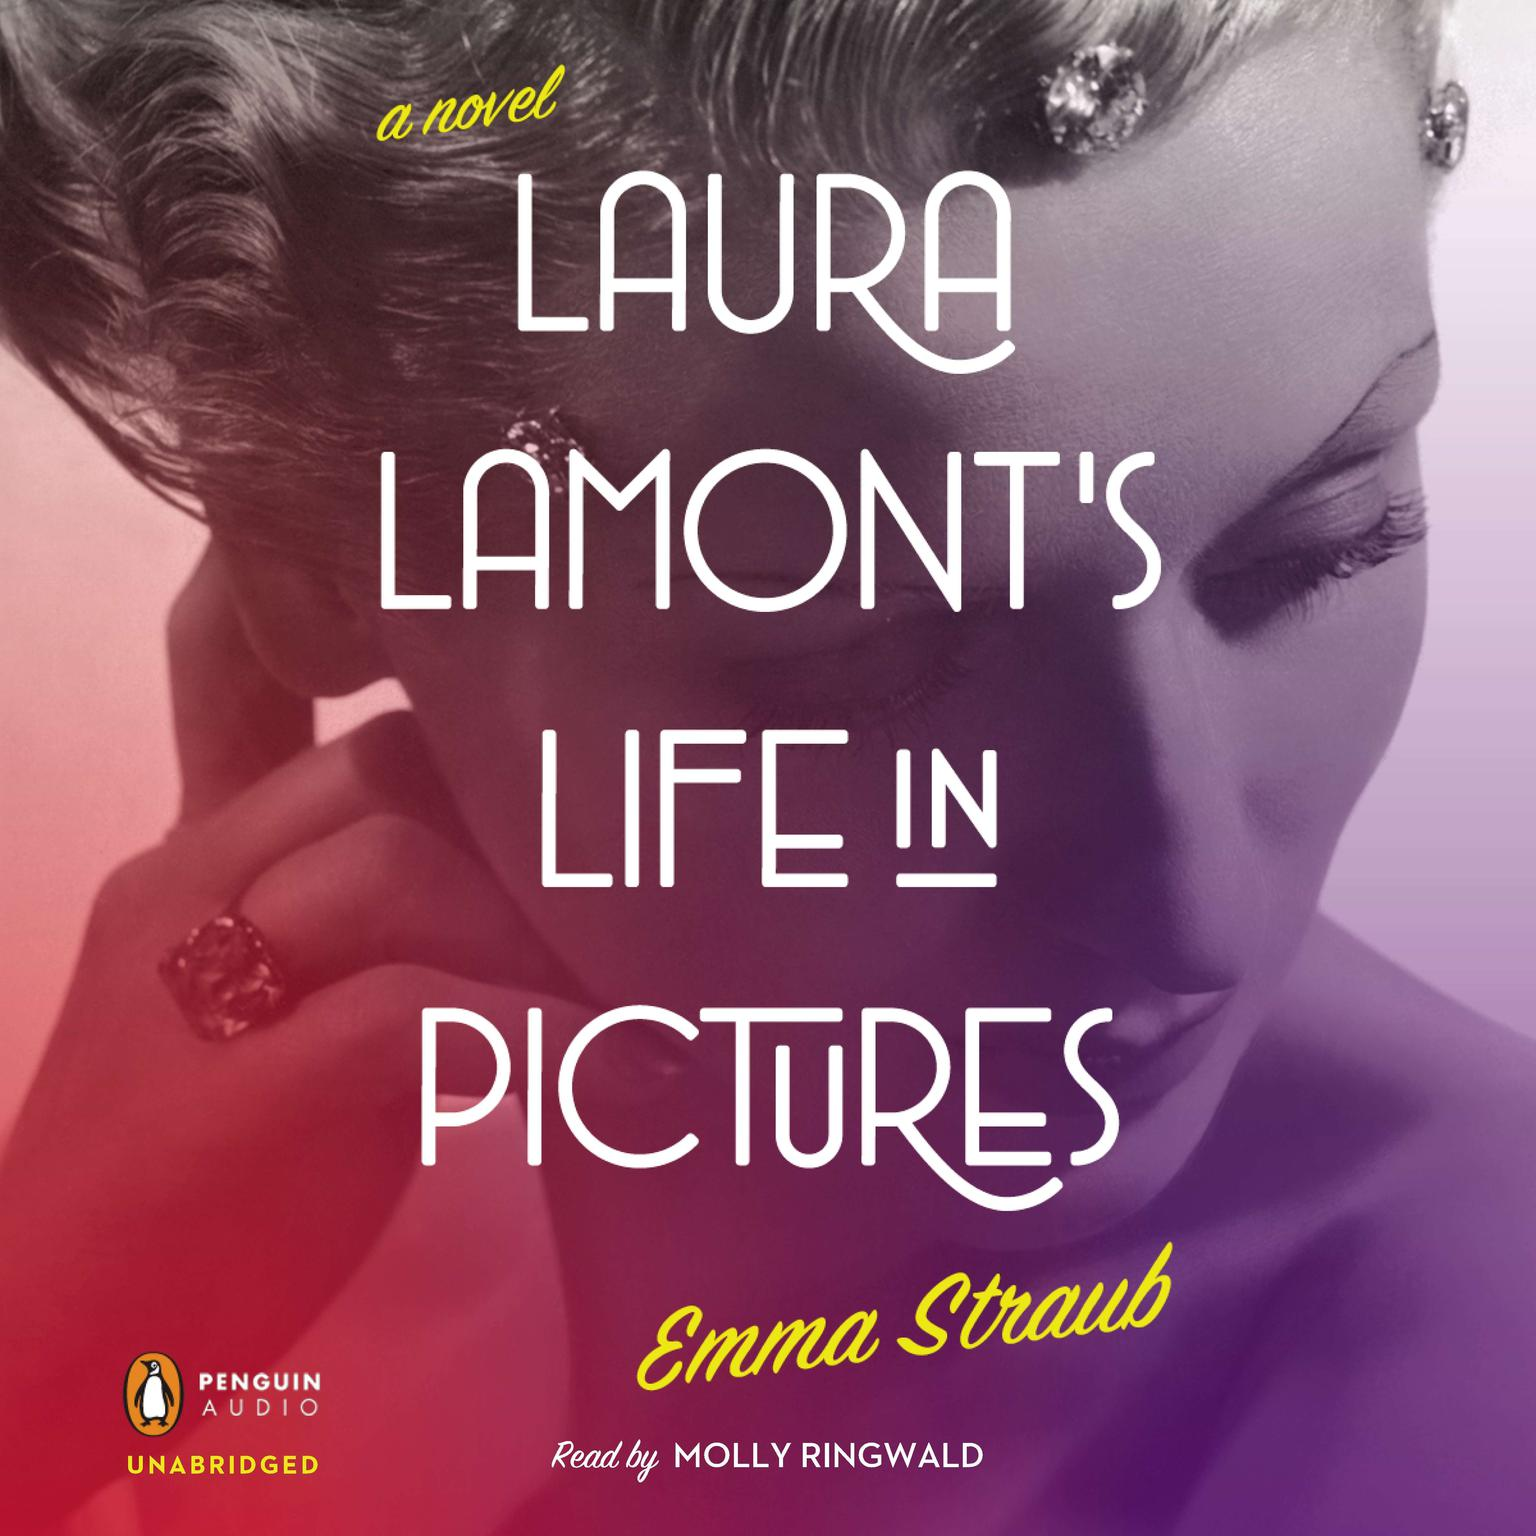 Printable Laura Lamont's Life in Pictures Audiobook Cover Art